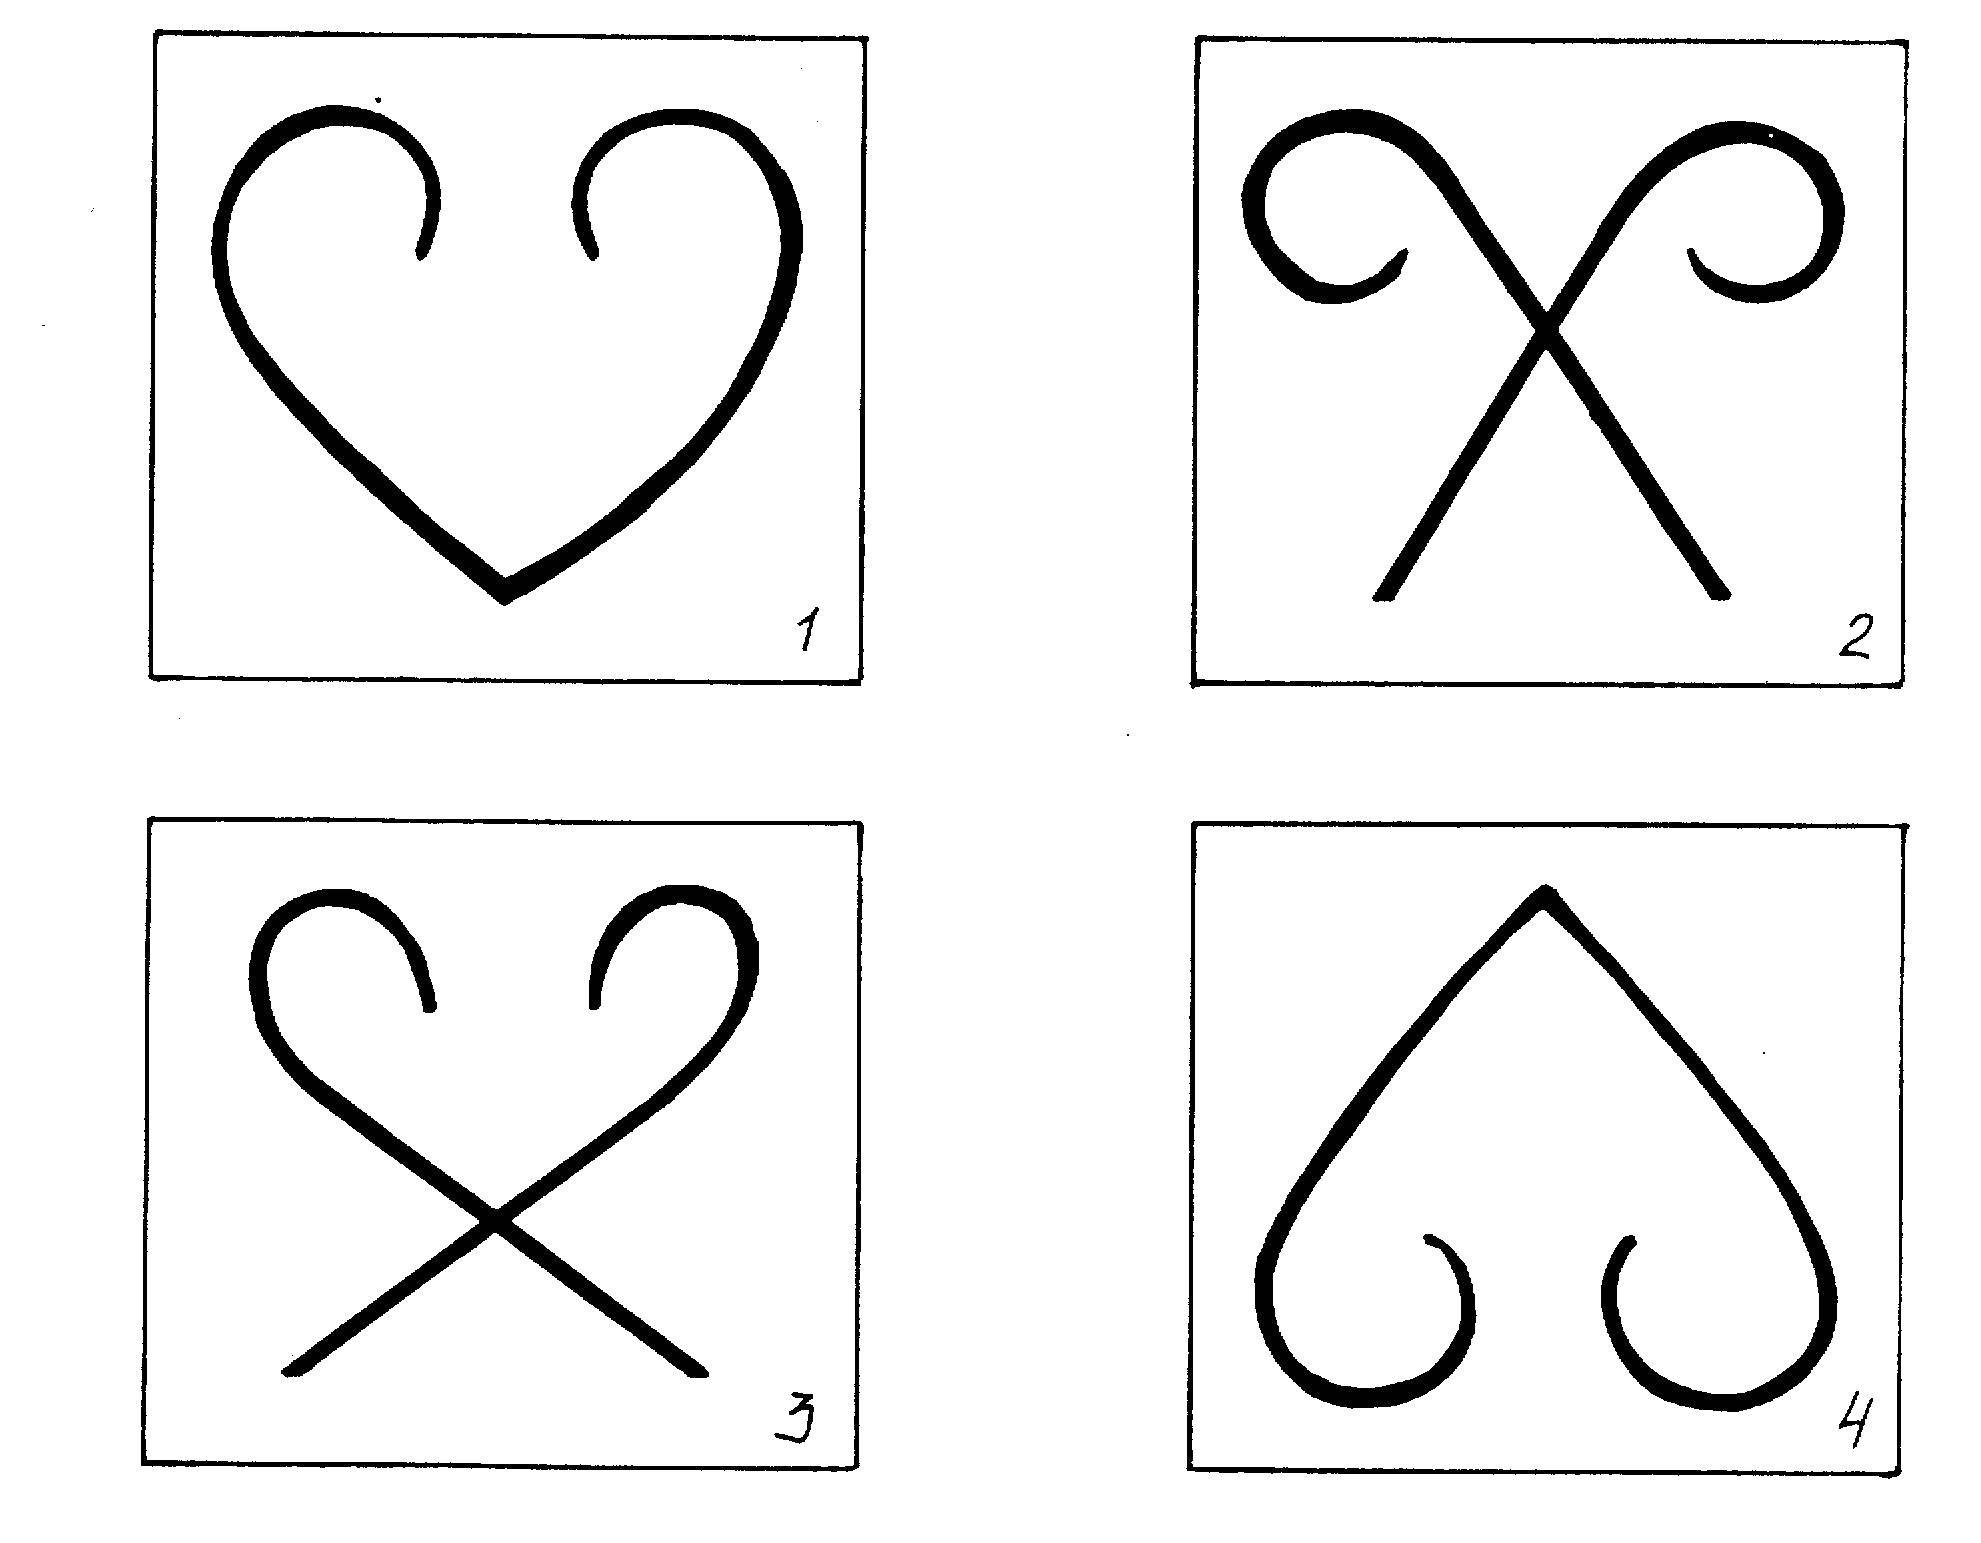 Coloring sheet patterns Download The alphabet, letters, words,.  Print